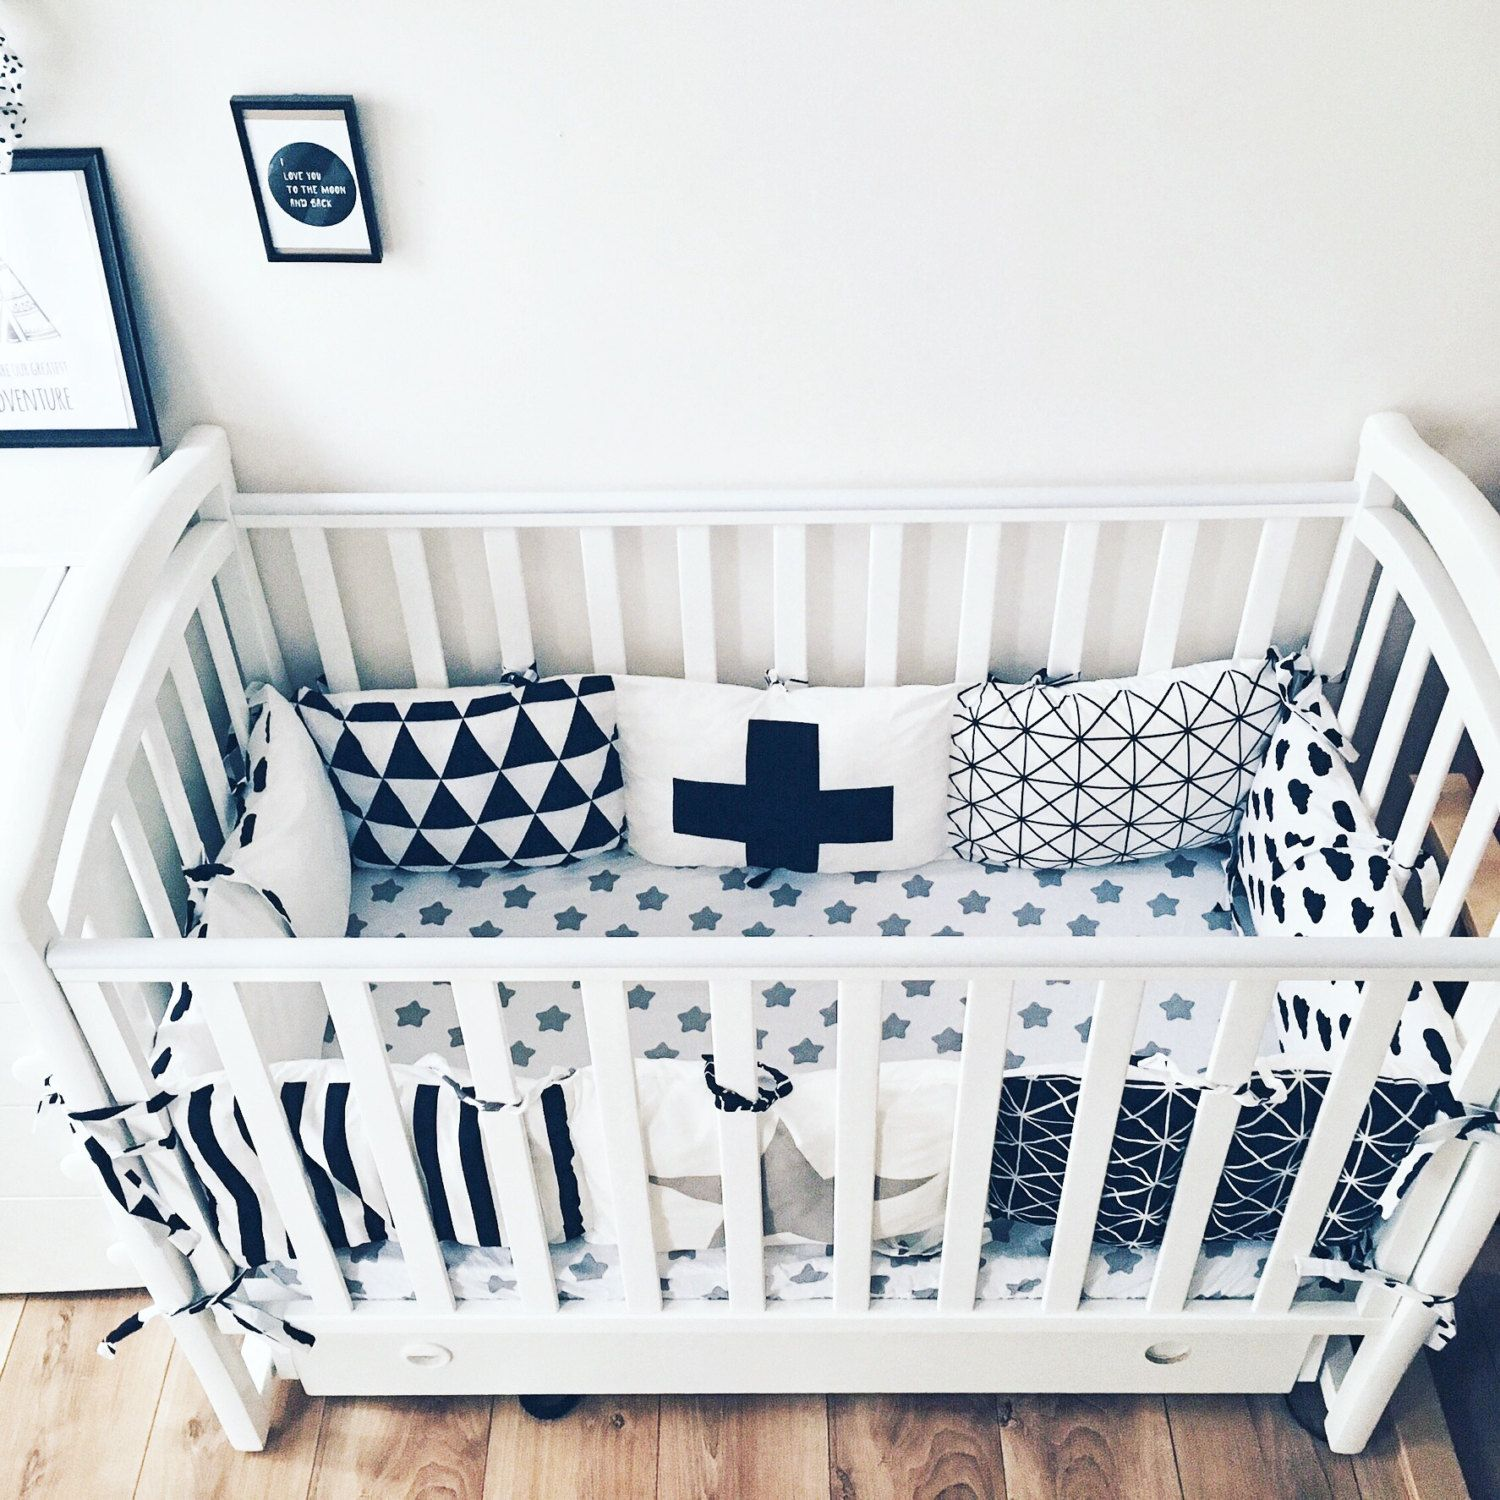 Crib Bumpers - Baby Bedding Bumper - Monochrome Bedding - Handmade ...